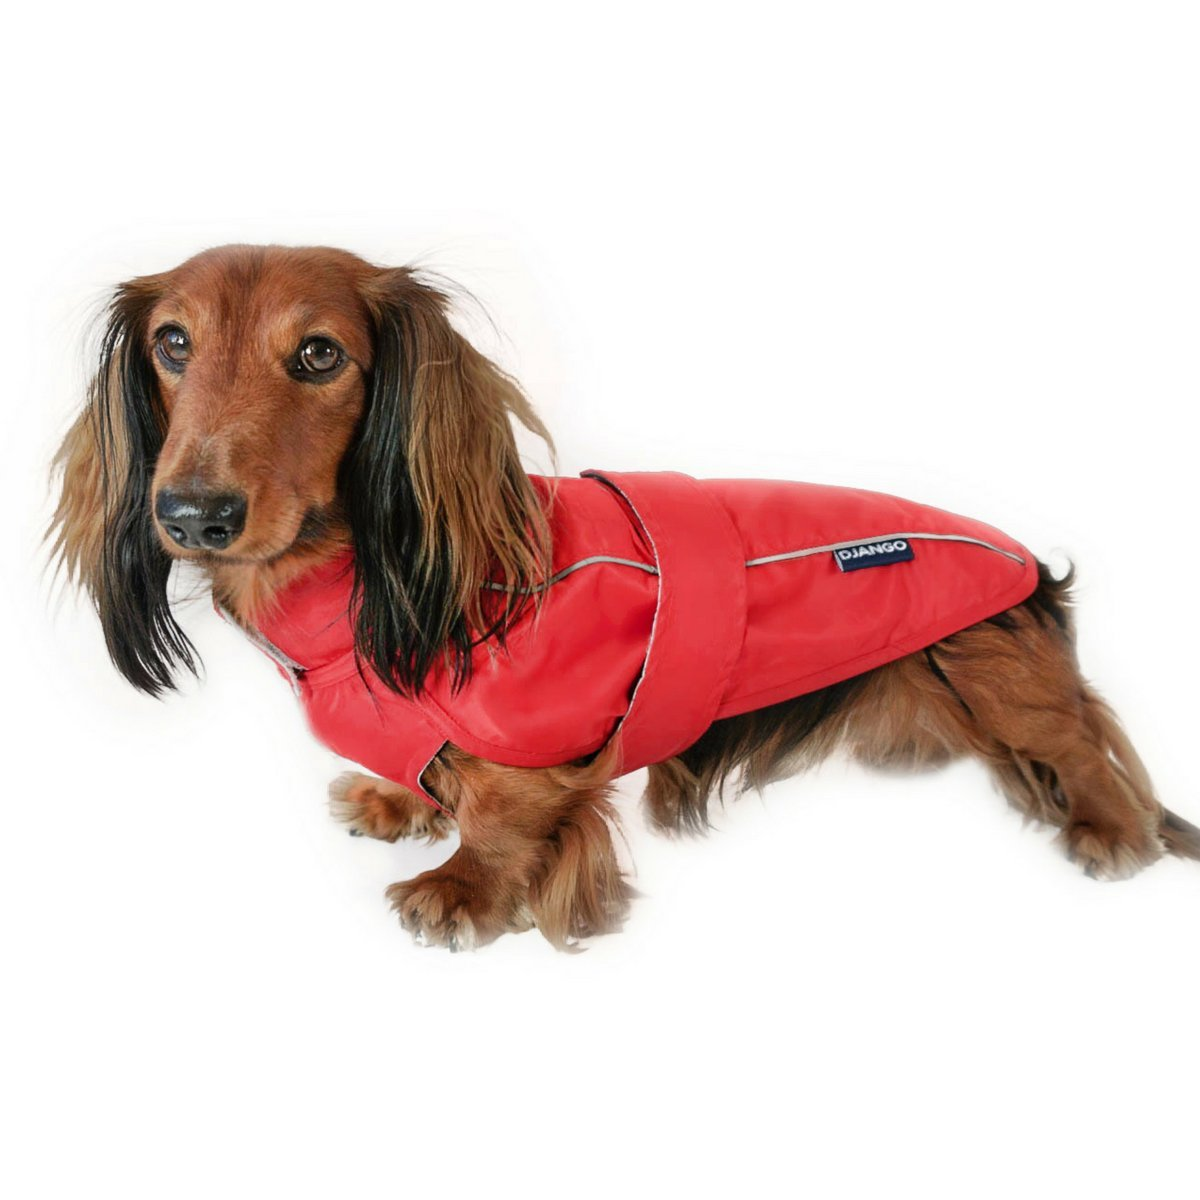 DJANGO City Slicker Water-Repellent Dog Raincoat and All-Weather Jacket with Reflective Piping (Medium, Cherry Red)